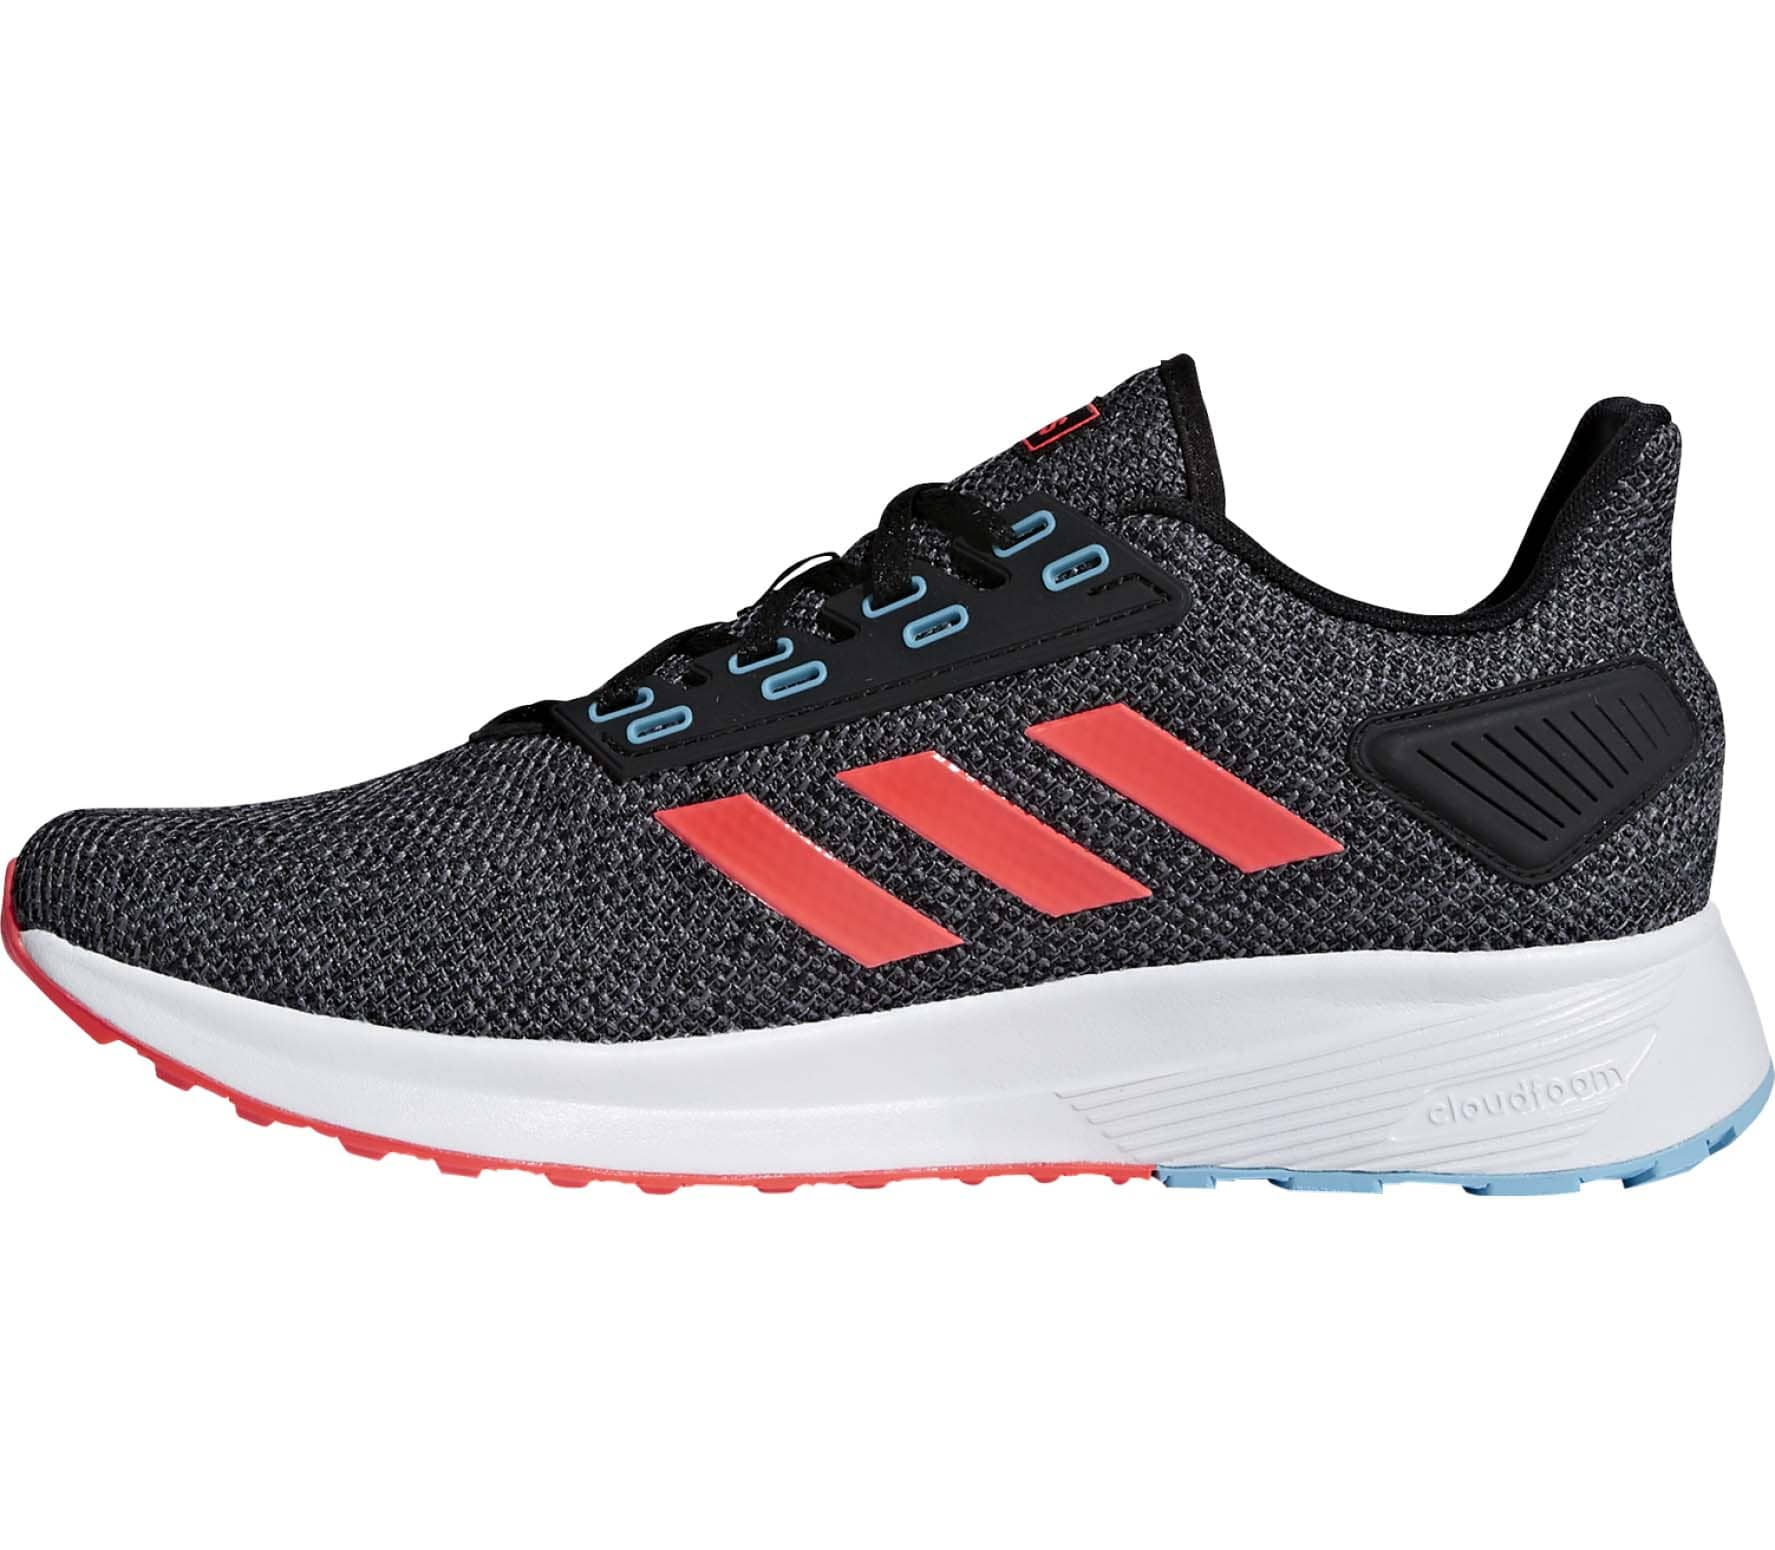 adidas Performance - Duramo 9 men s running shoes (black red) - buy ... 7aebc671967